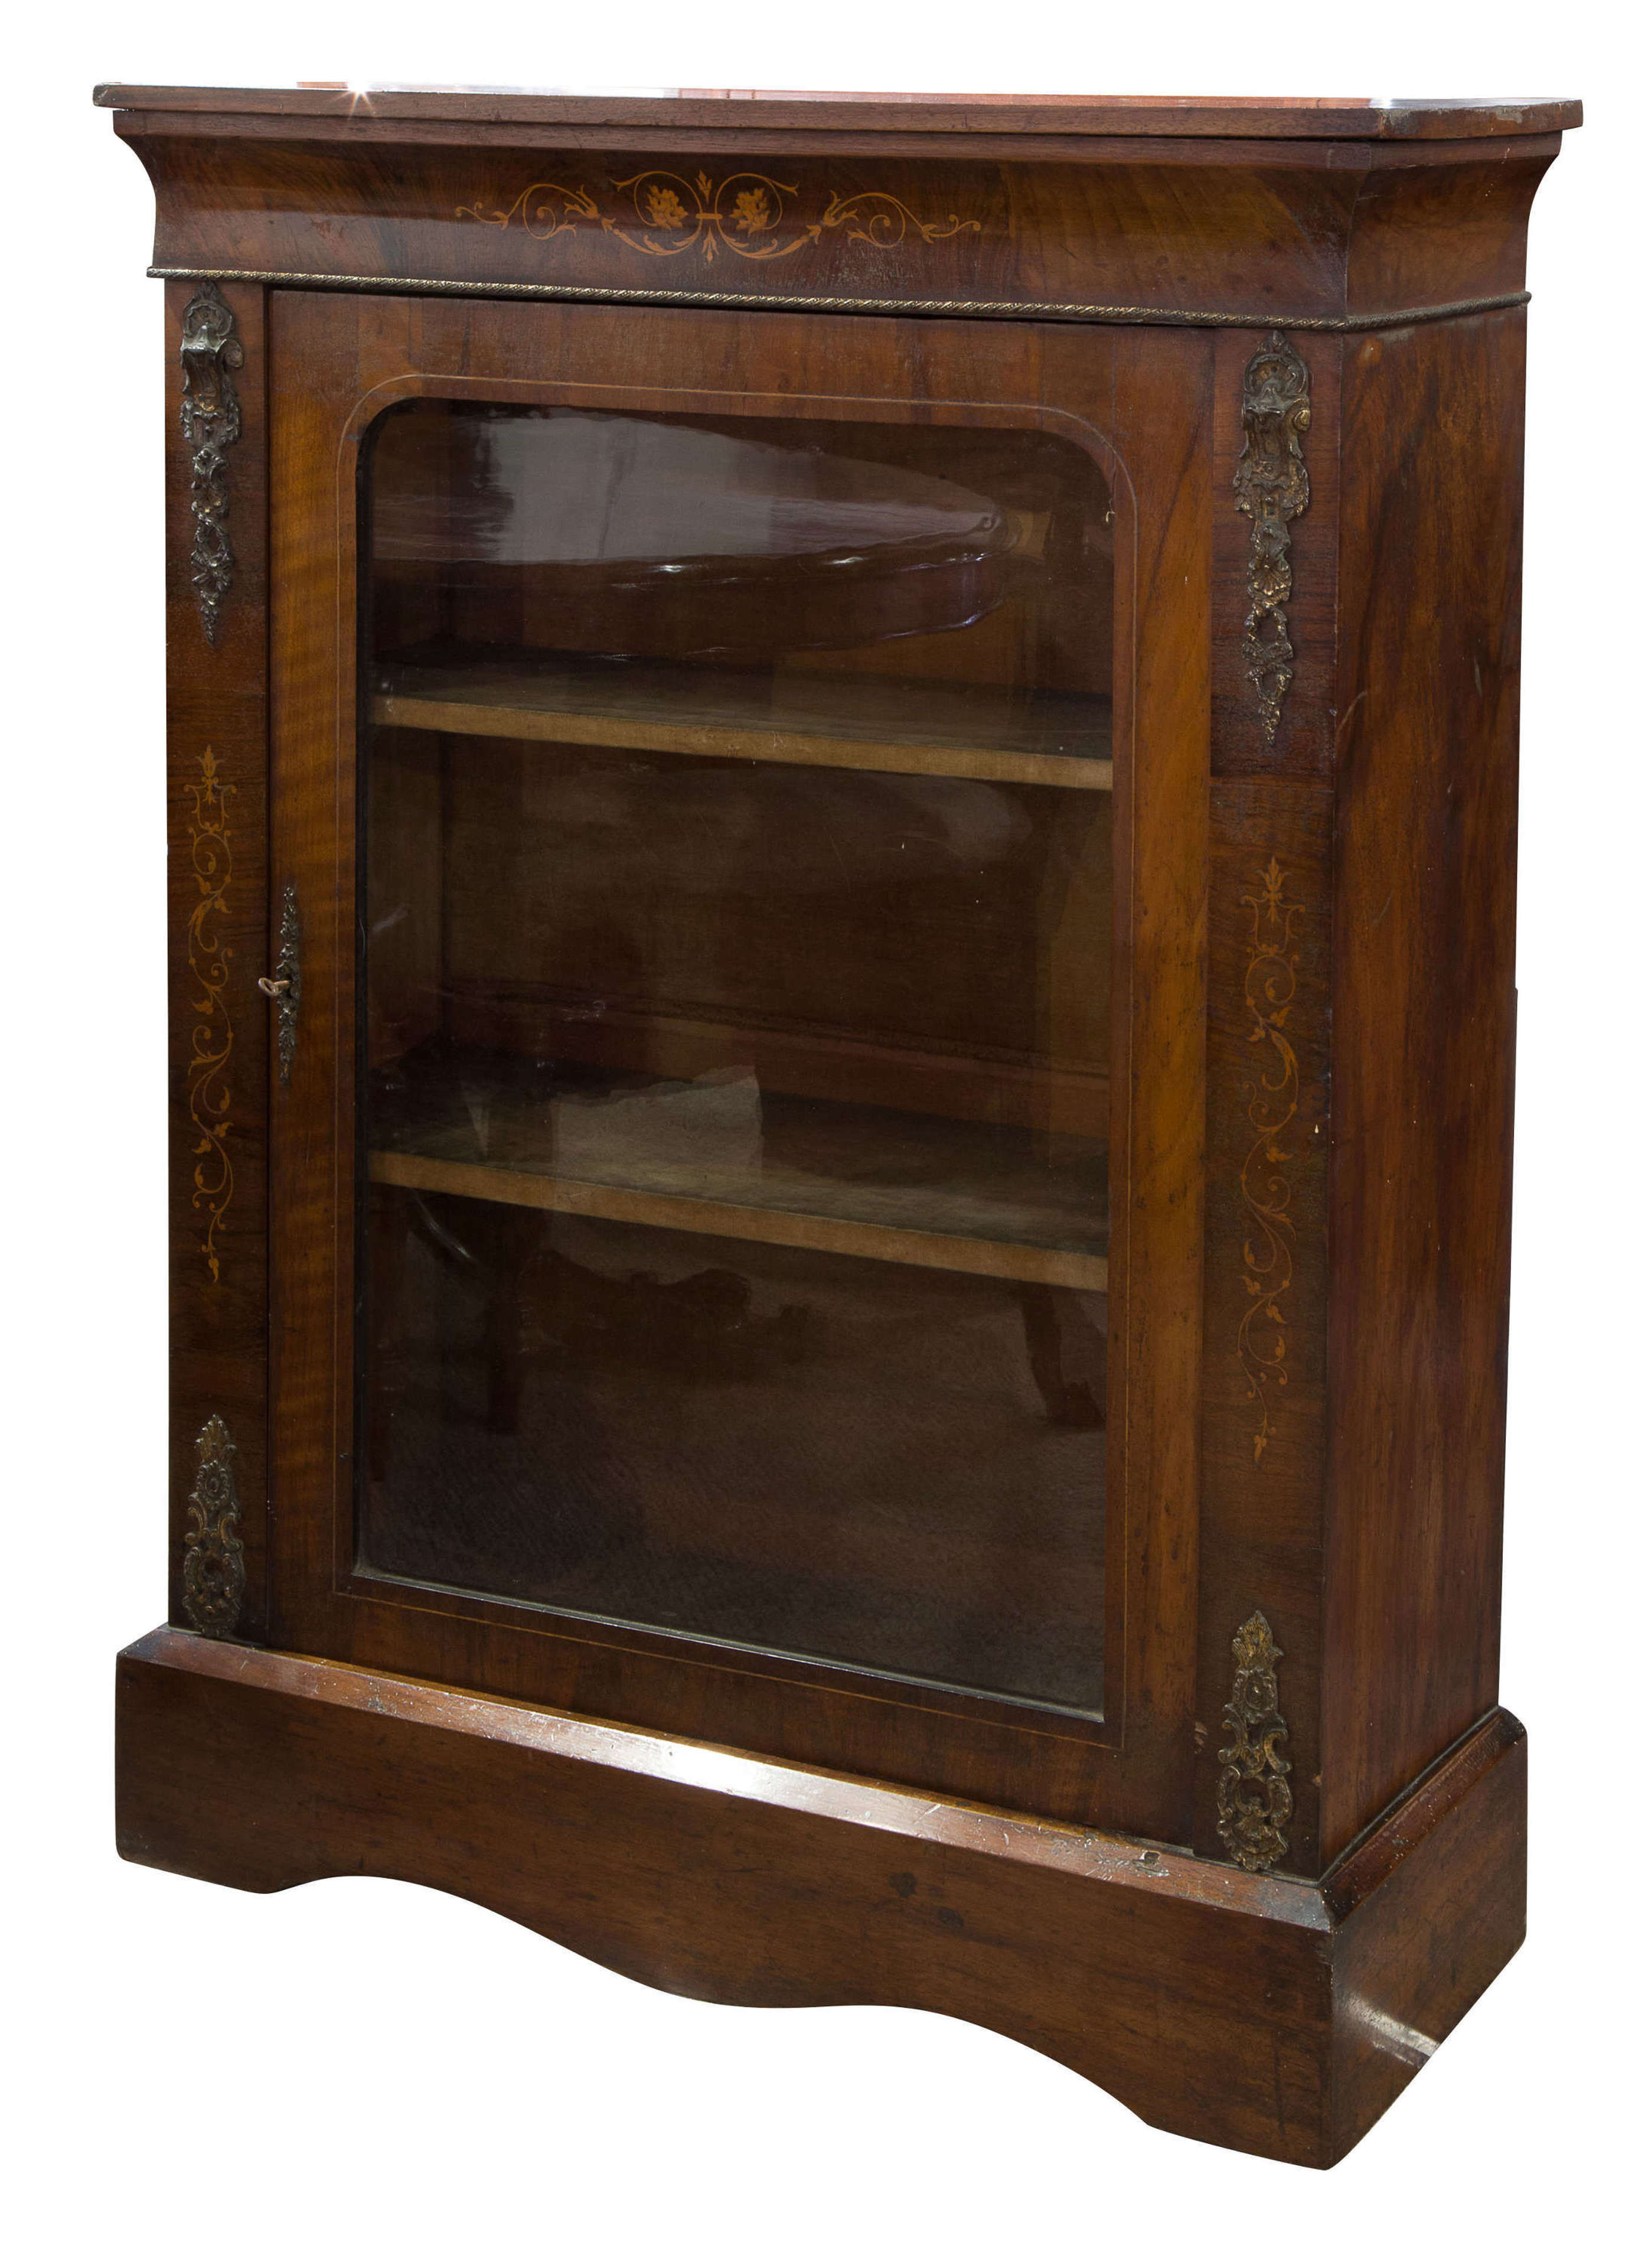 Mid Victorian walnut and marquetry inlaid side cabinet